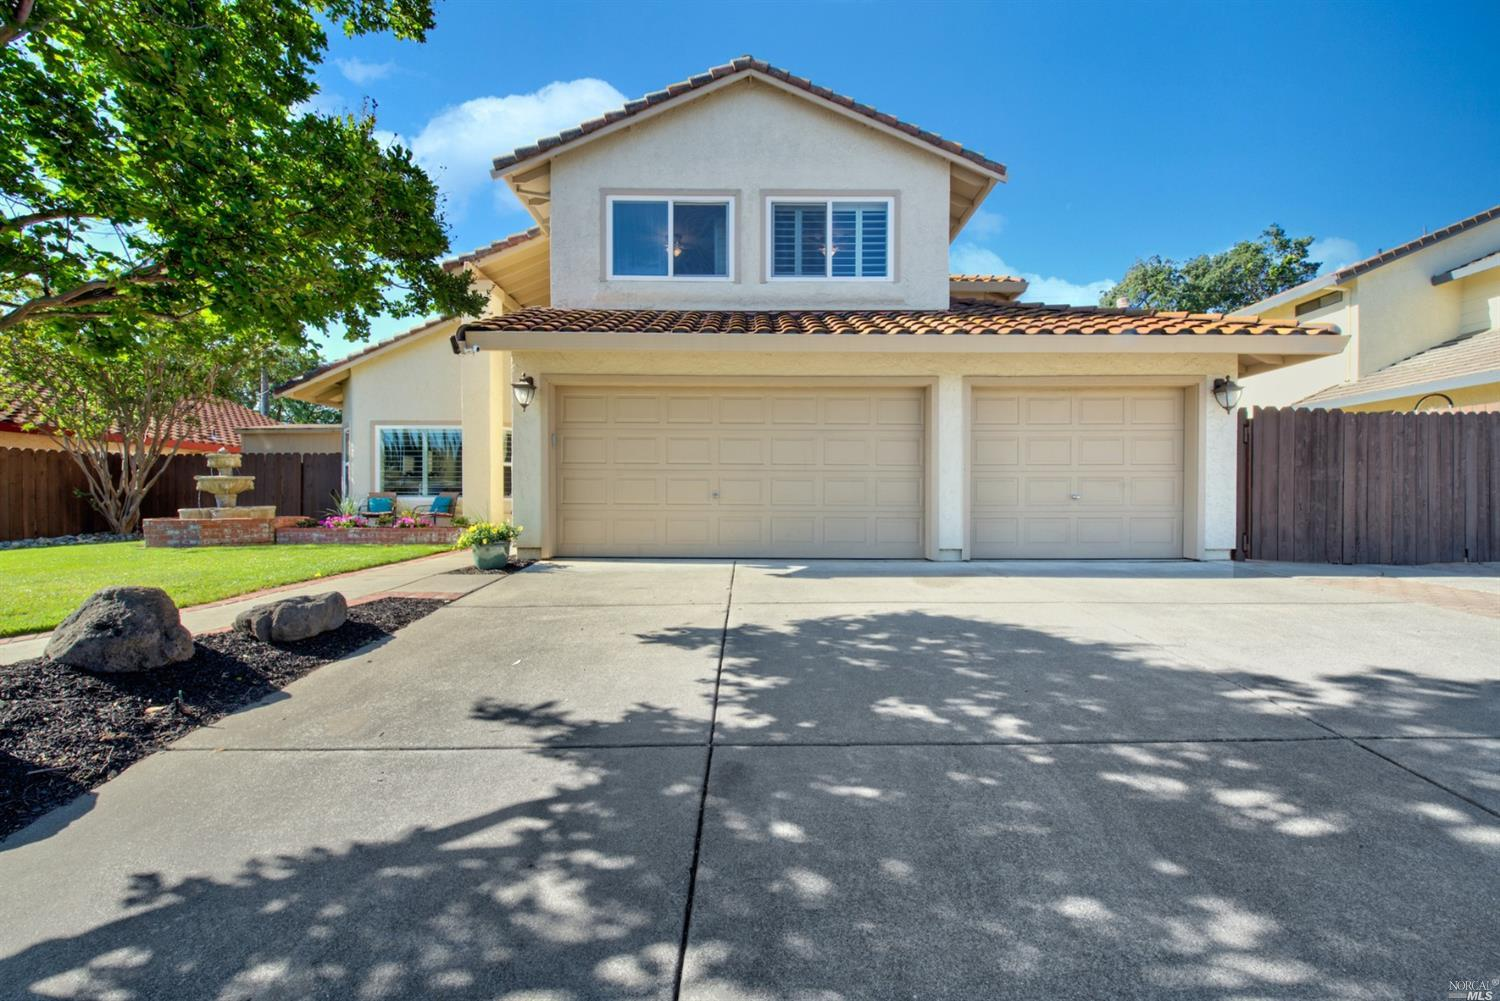 Gorgeous North Vacaville updated home with a 3-car garage and RV parking, located on one of Vacavill